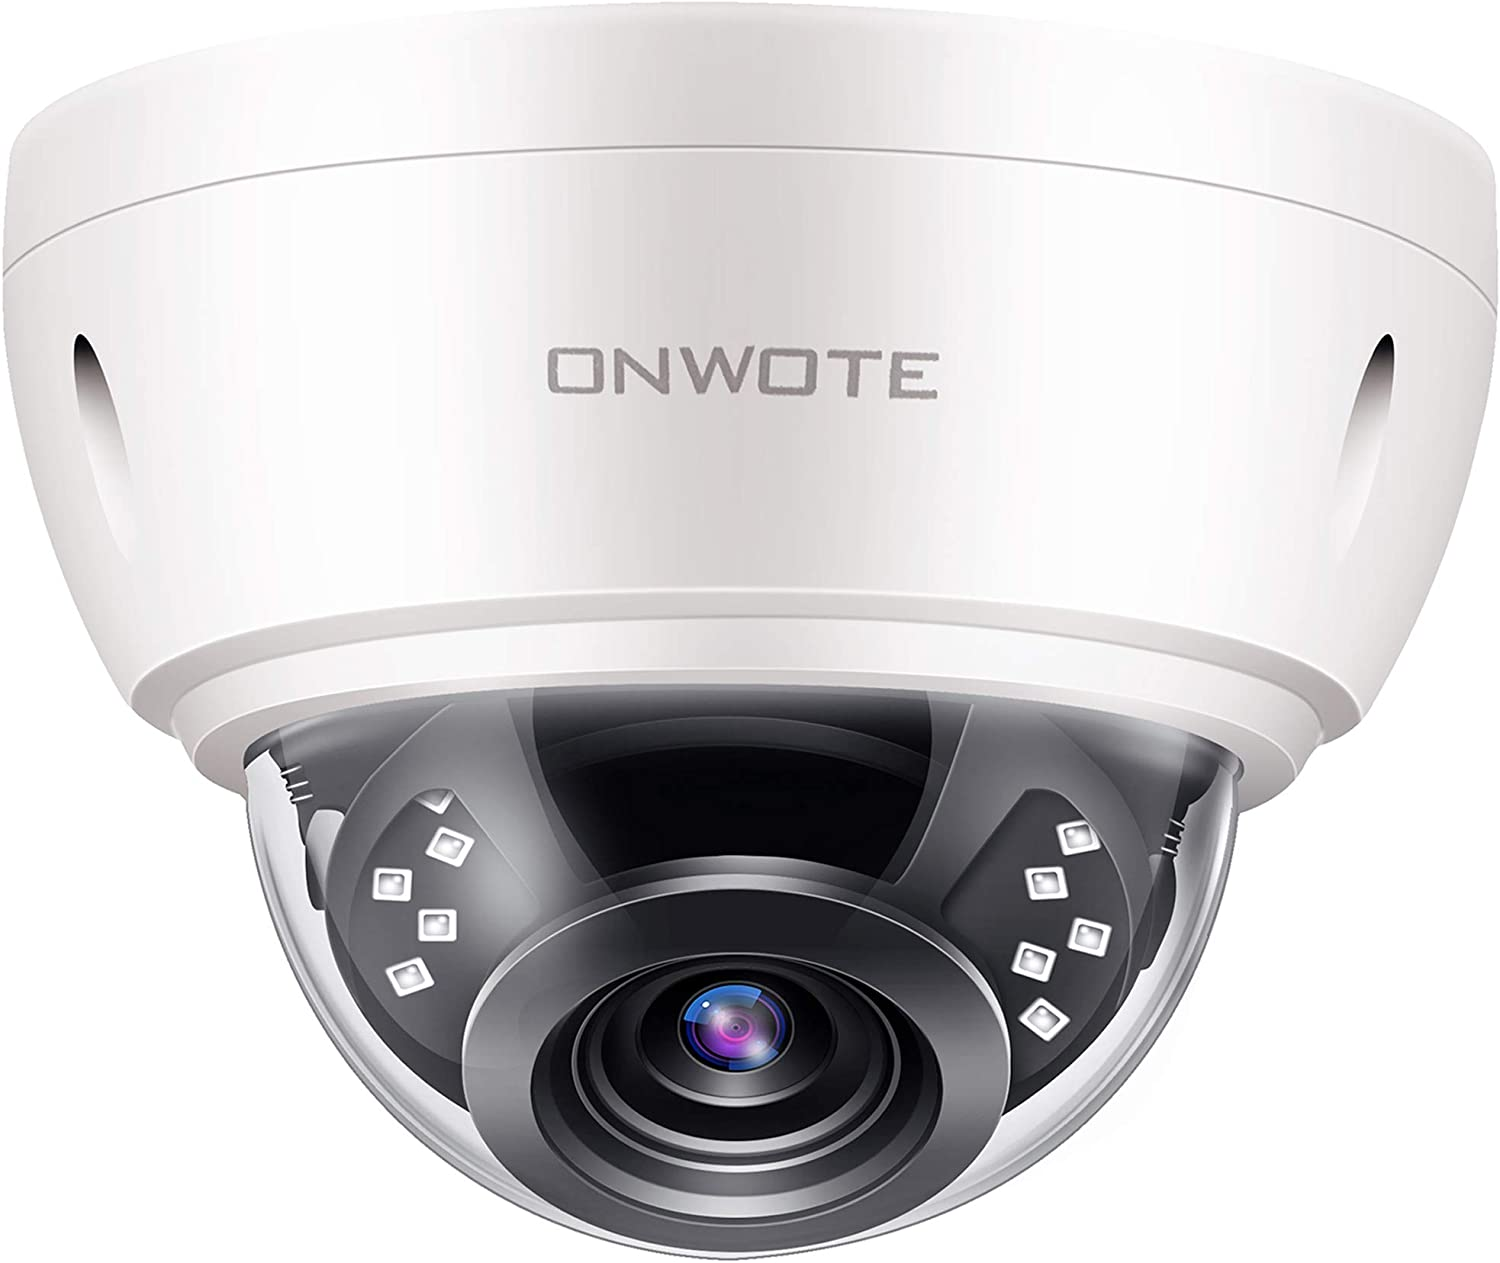 【Audio】 ONWOTE 5MP HD IP POE Security Camera Outdoor Dome Onvif, 5 Megapixels 2592x 1944P Super HD Vandalproof Camera, 100ft IR, 90° Viewing Angle, IP66 Weatherproof, Remote Access, Motion Alert